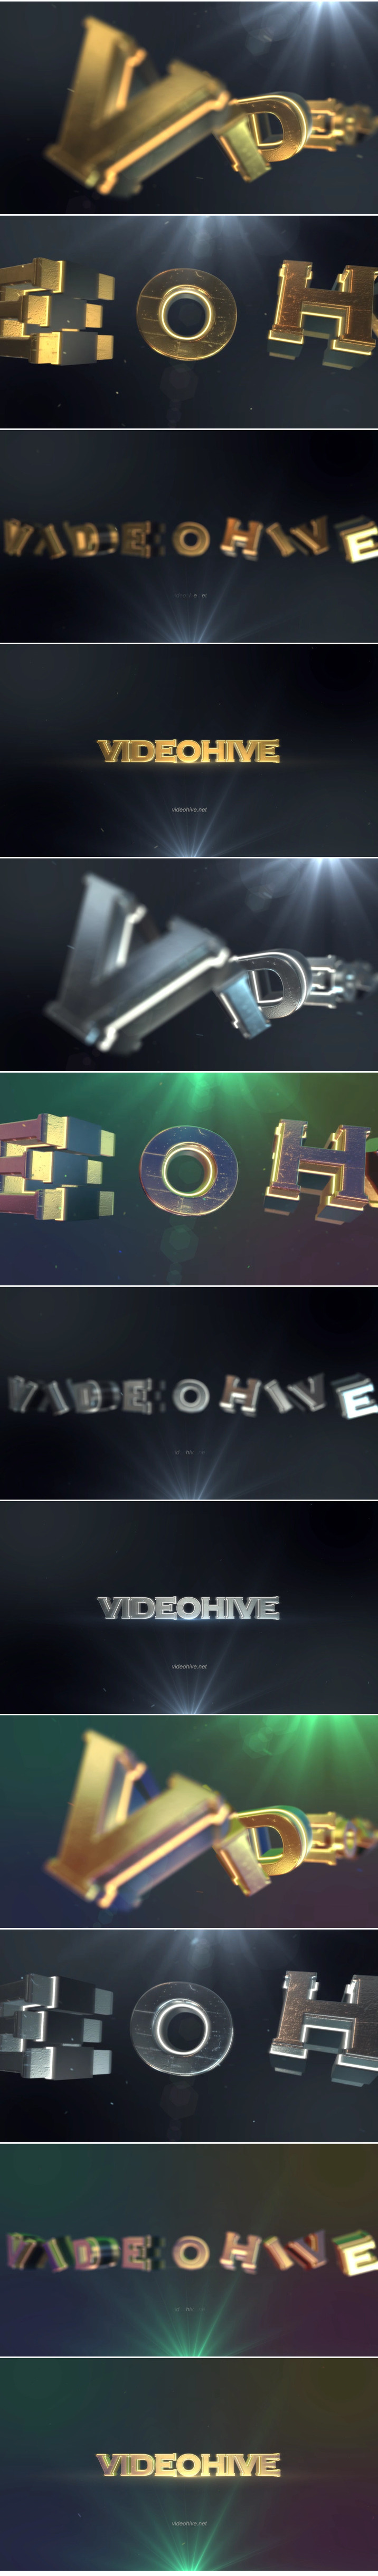 videohive_cinematic_logo_text_reveal_after_effects_project_17646404